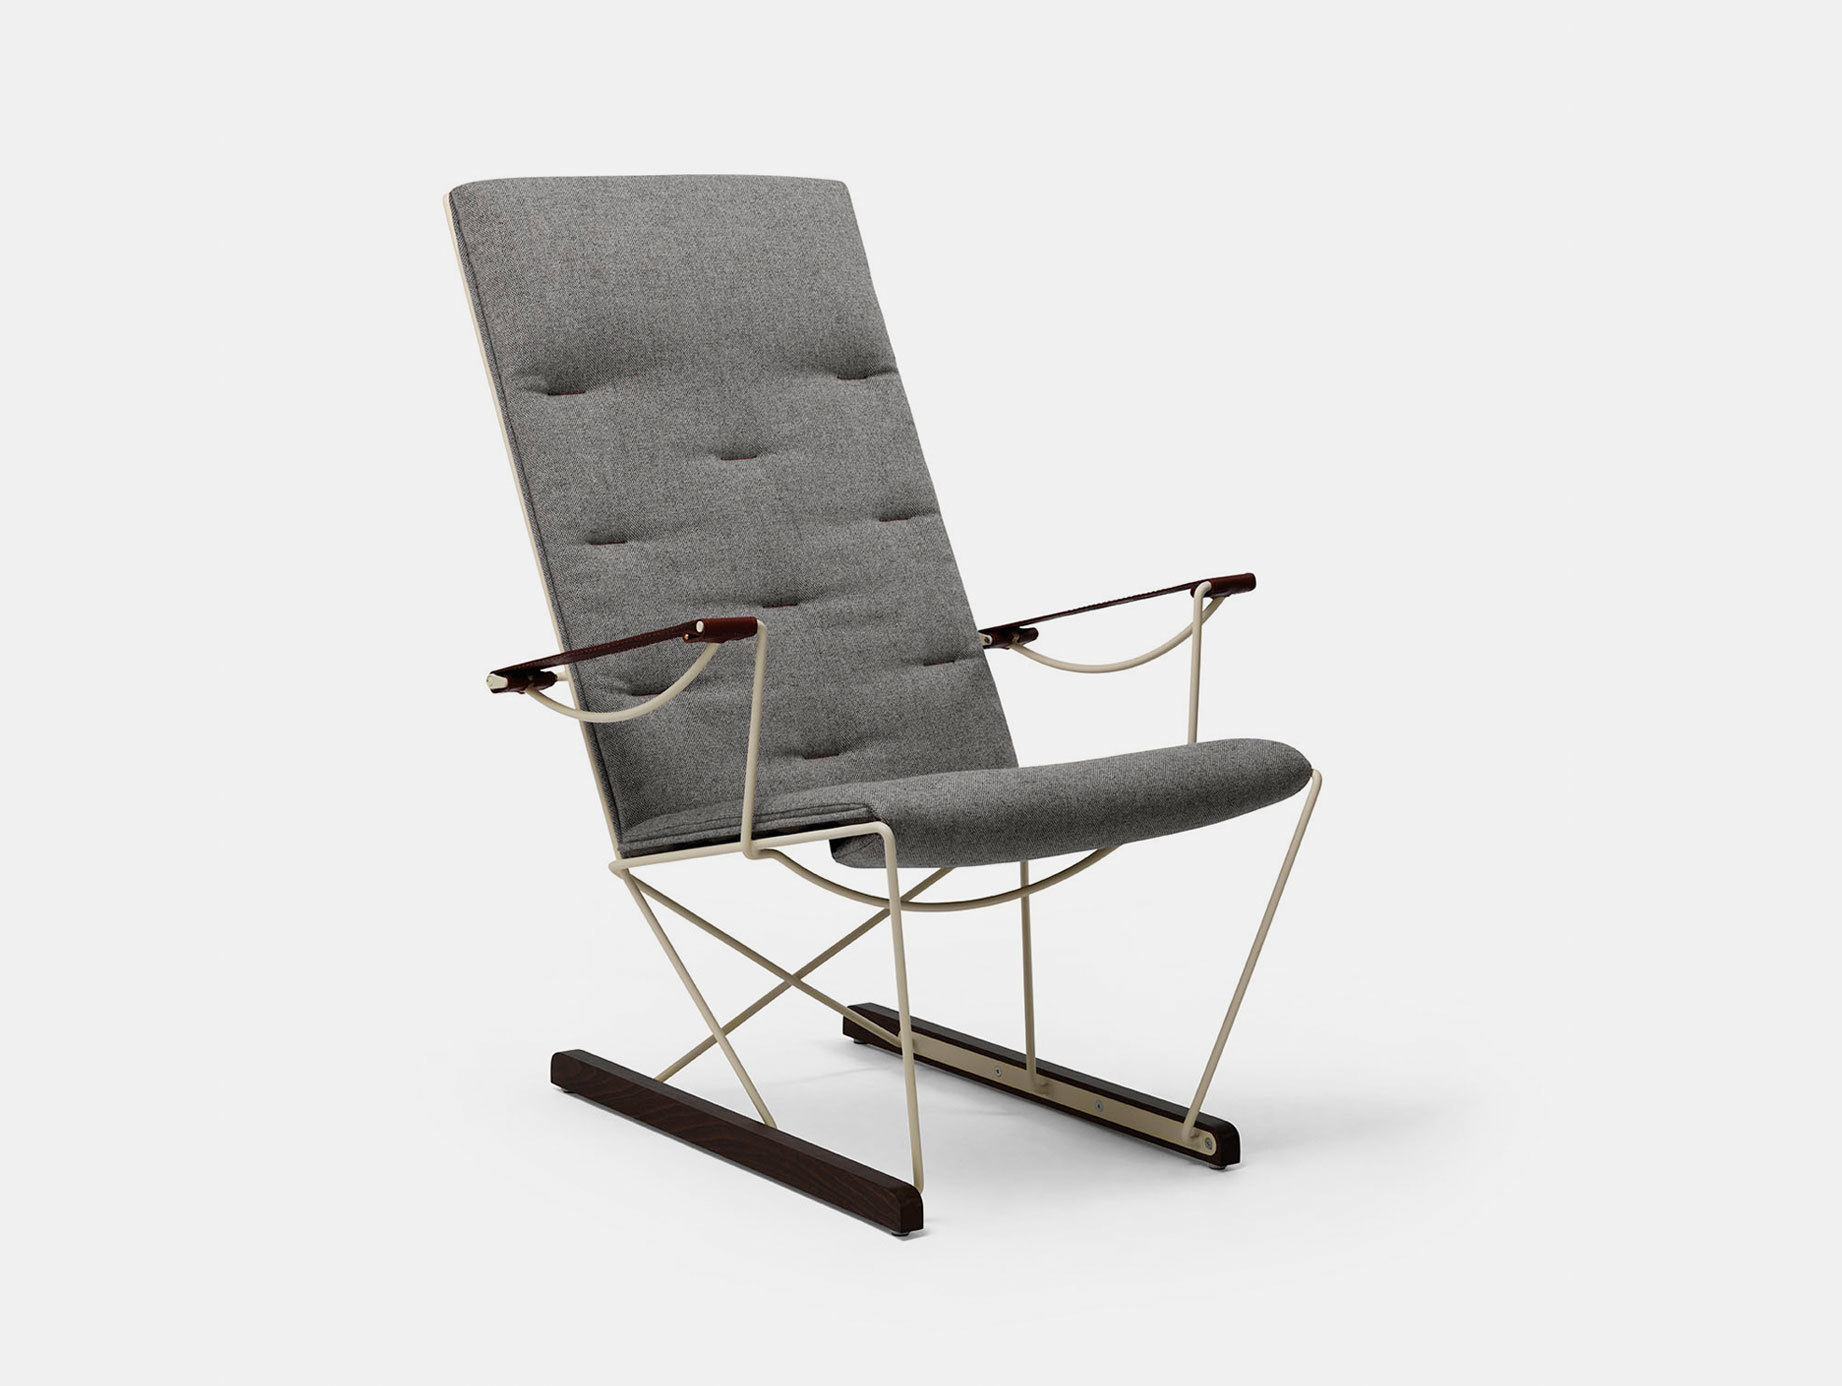 Spark Lounge Chair image 1